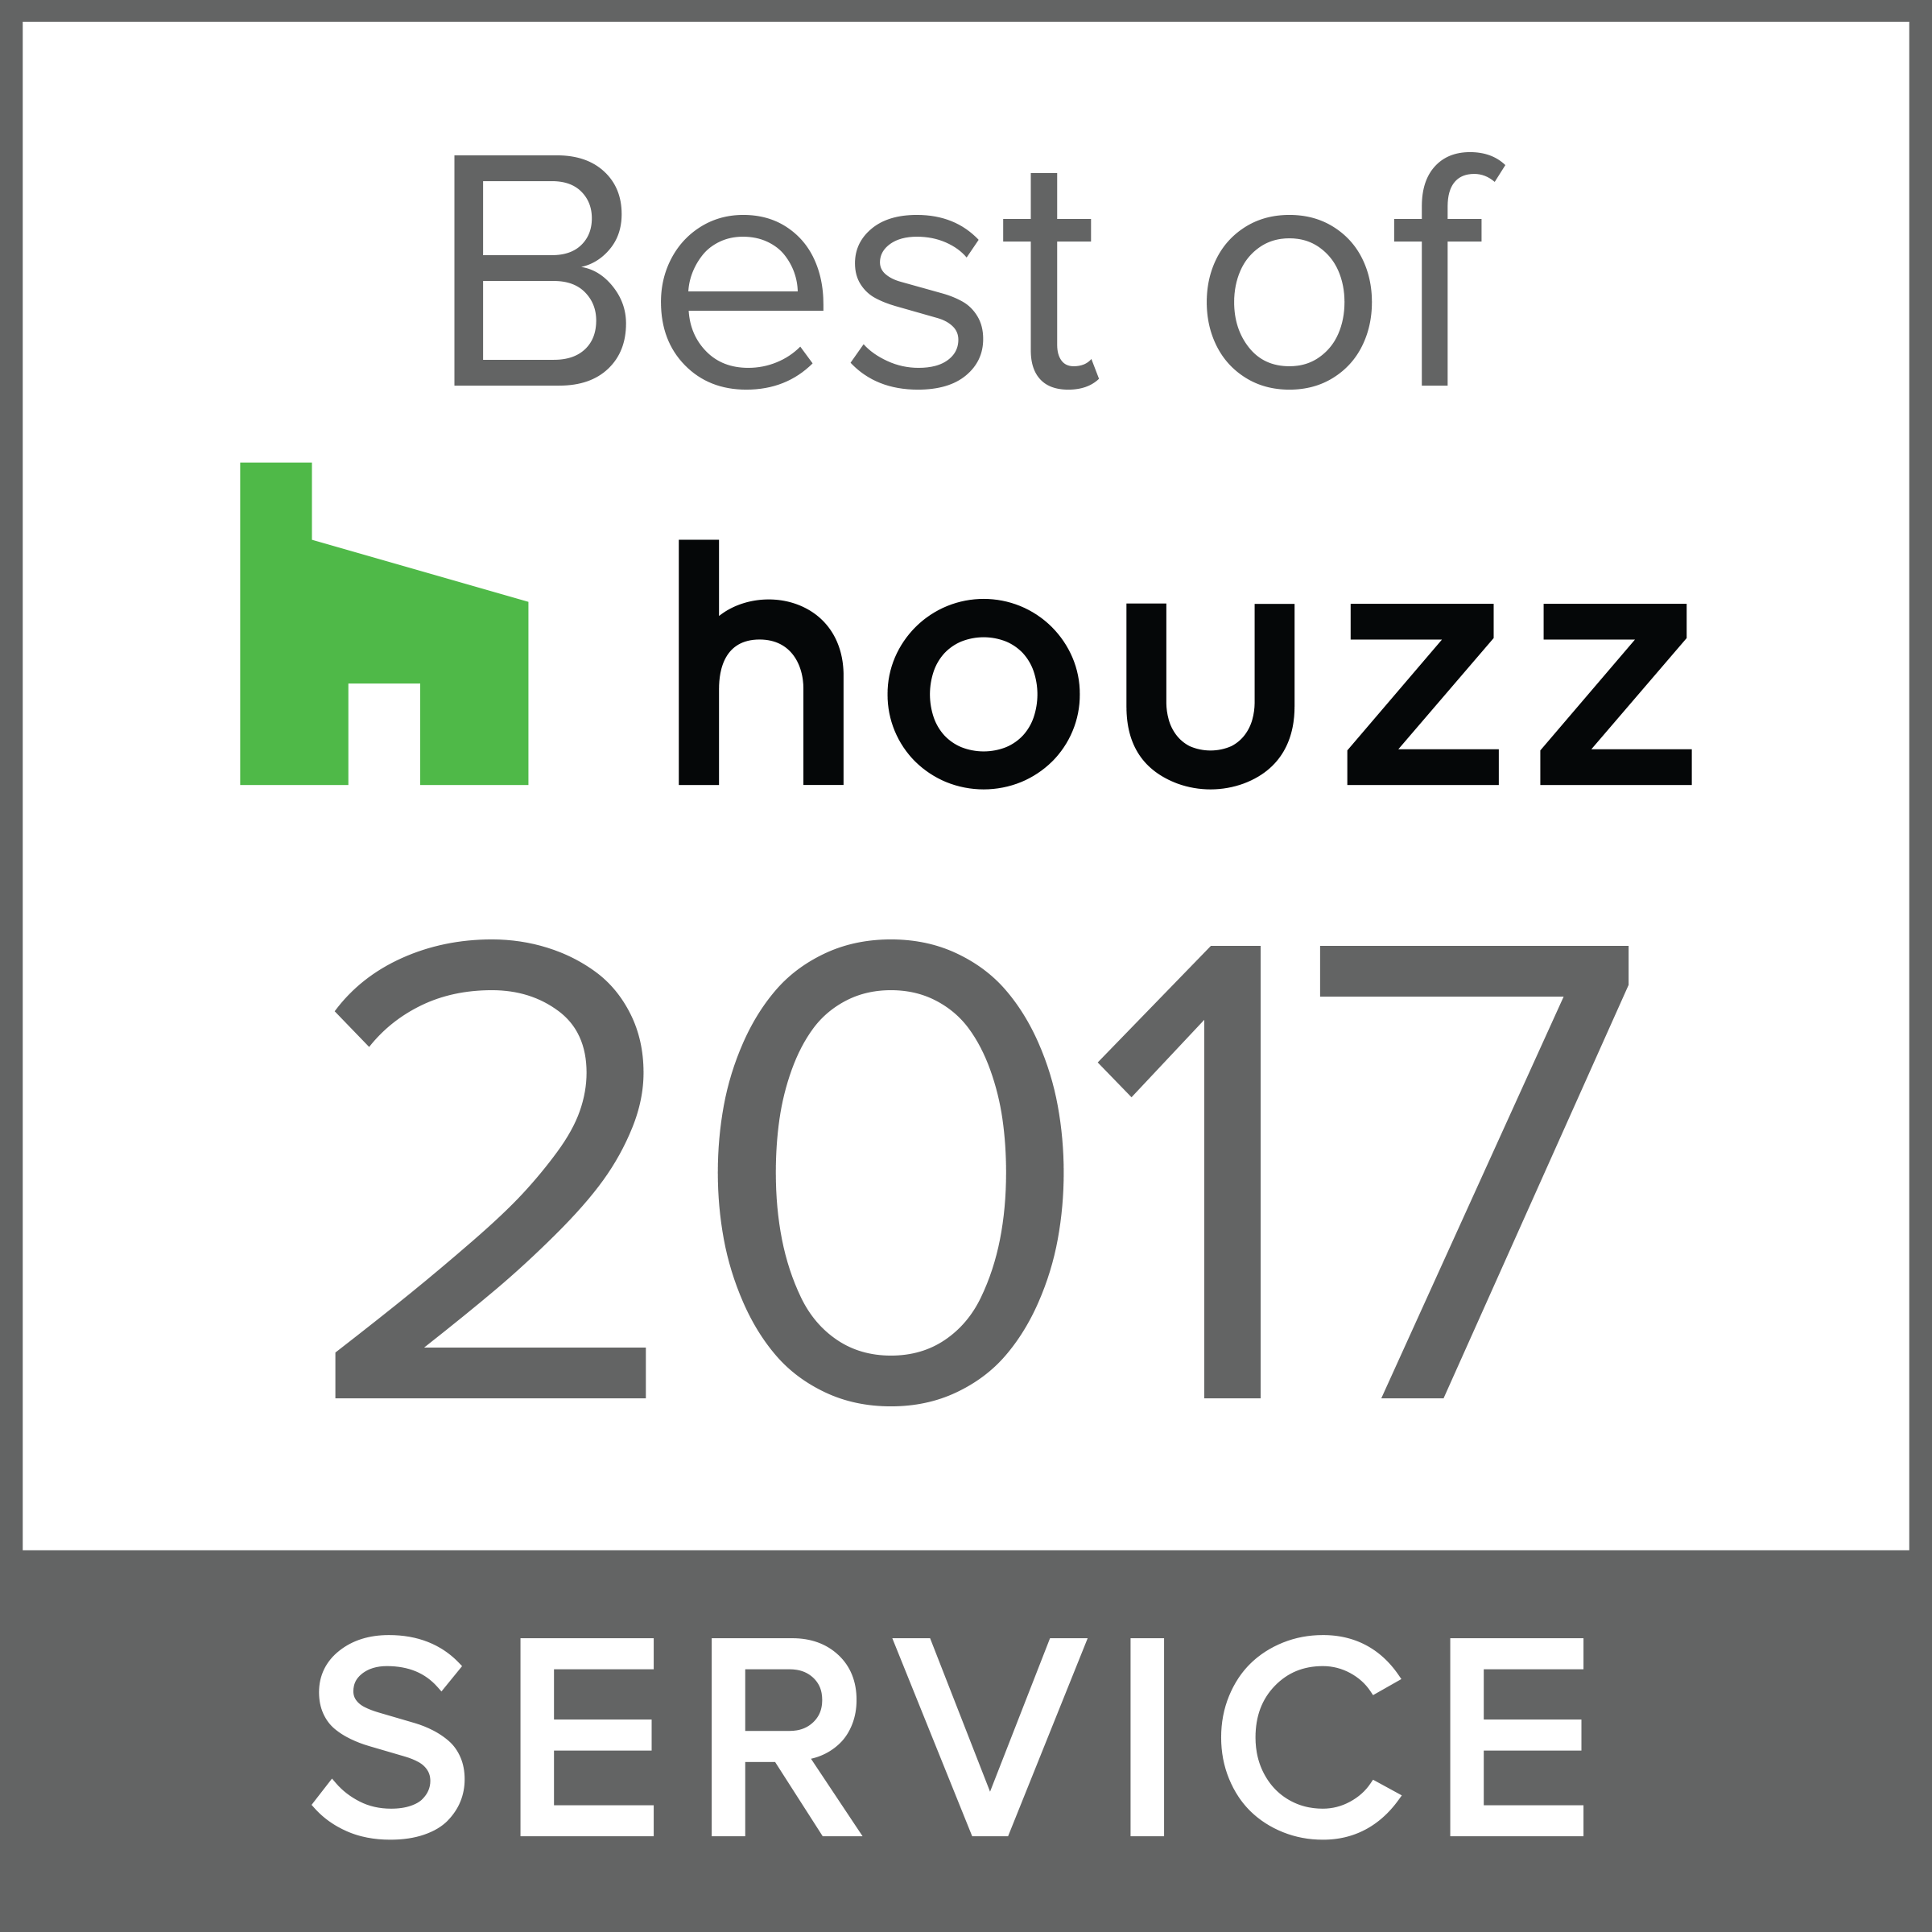 Houzz_Best of_Service_2017.png